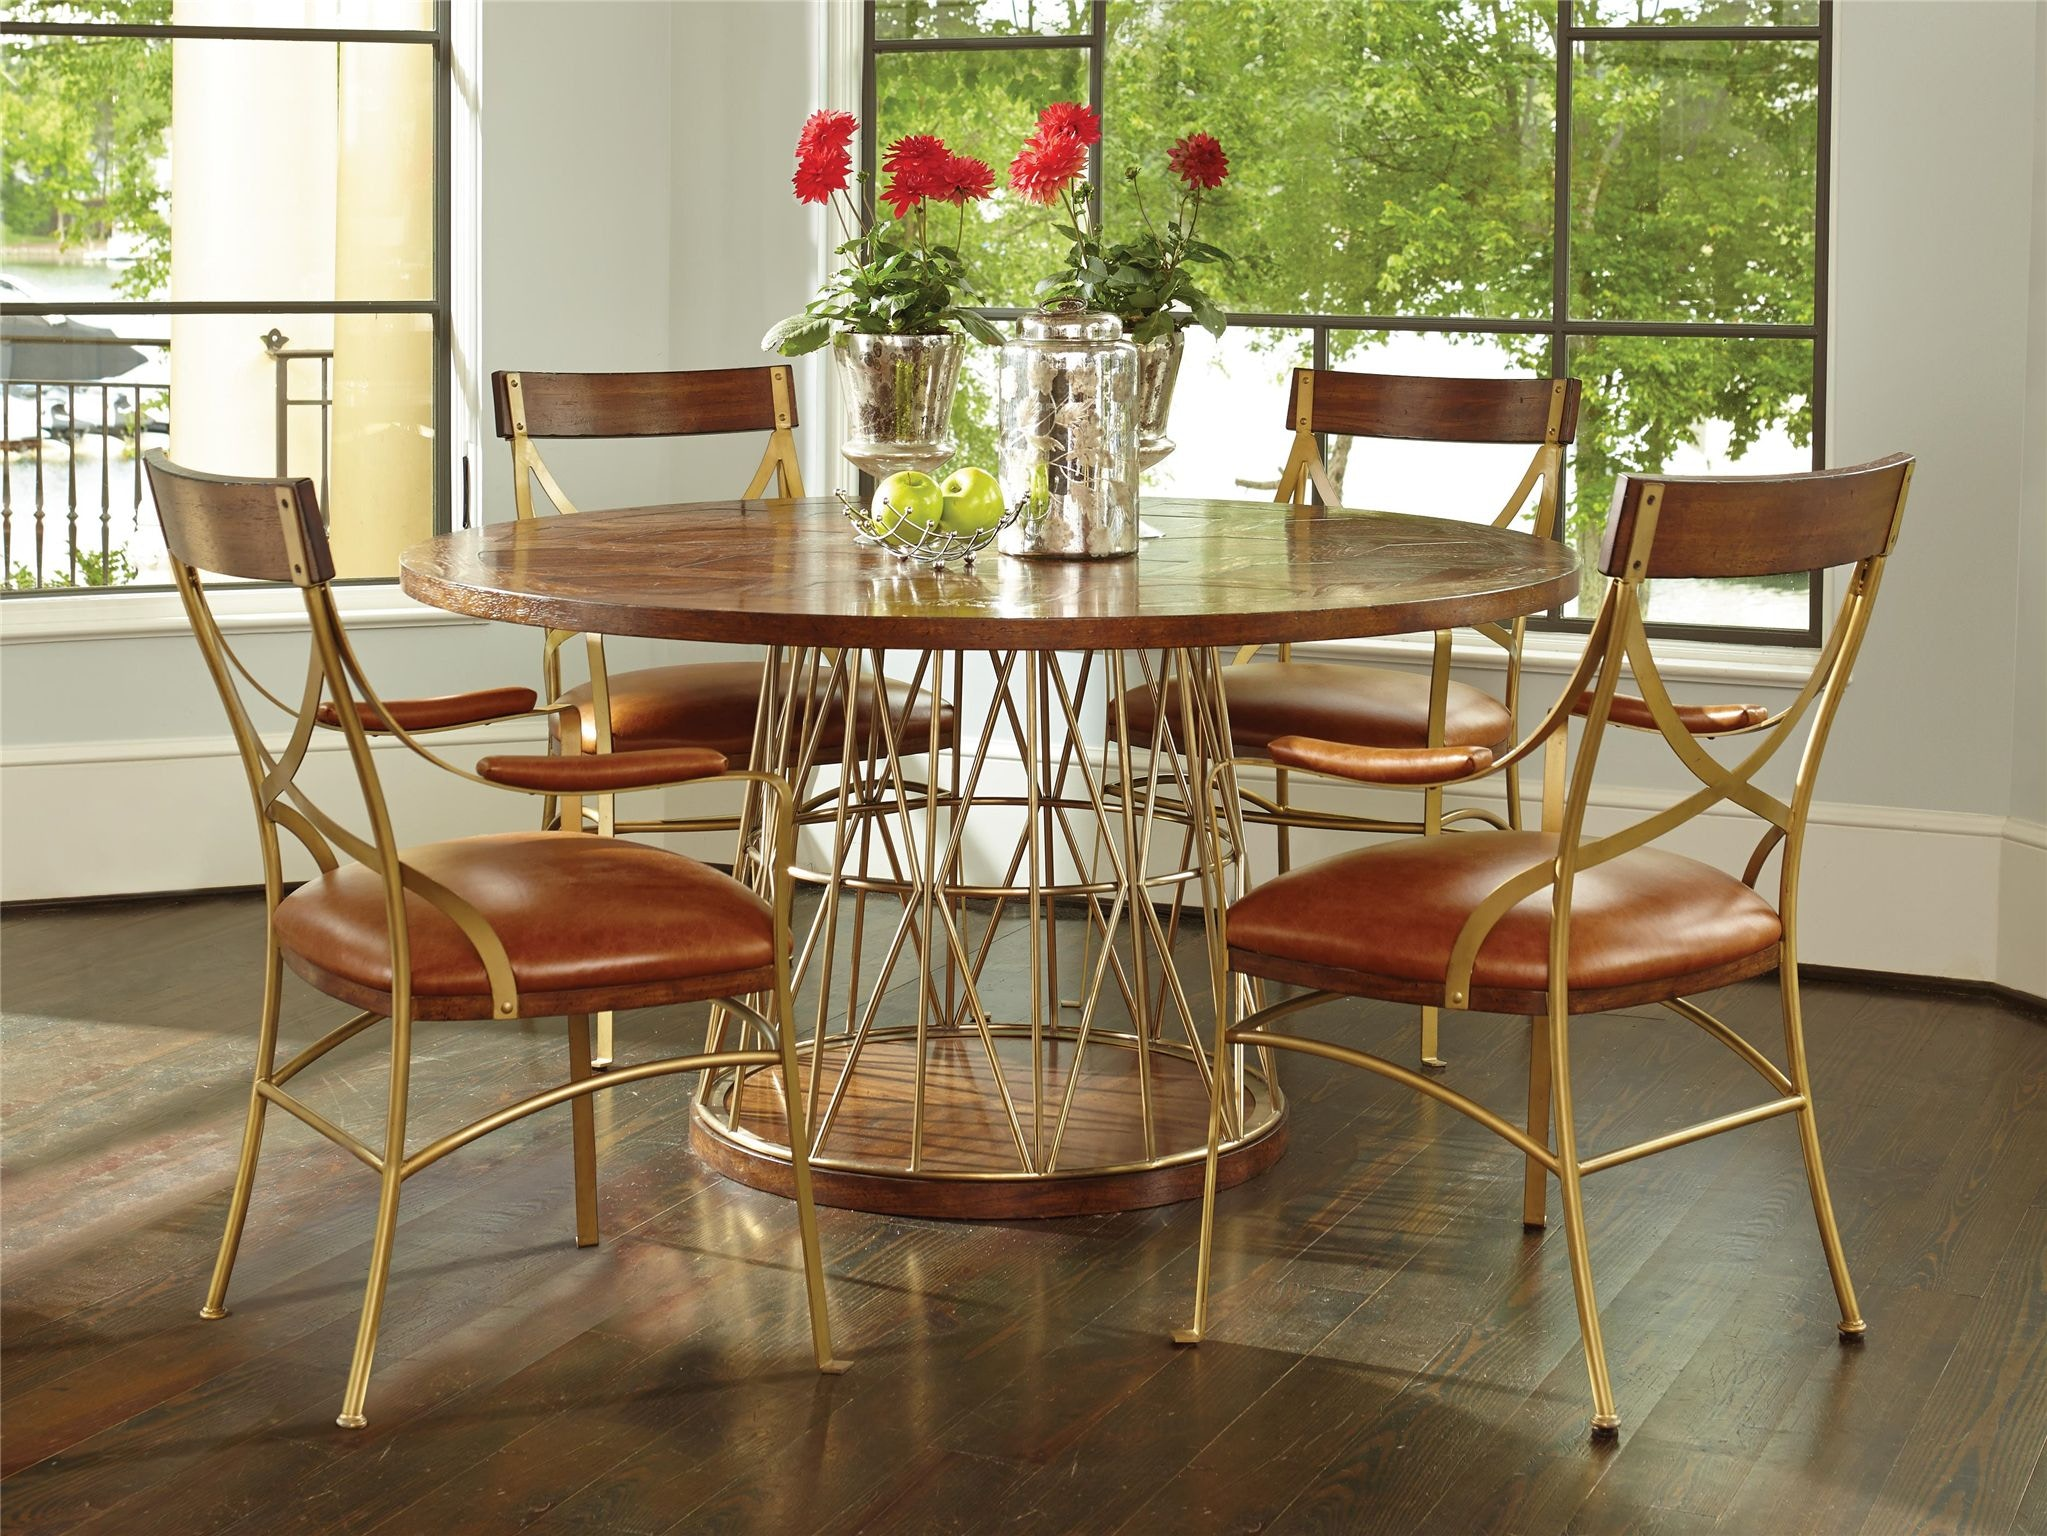 Attrayant Fine Furniture Design Andover Dining Table With Wood Top 1420 810/811